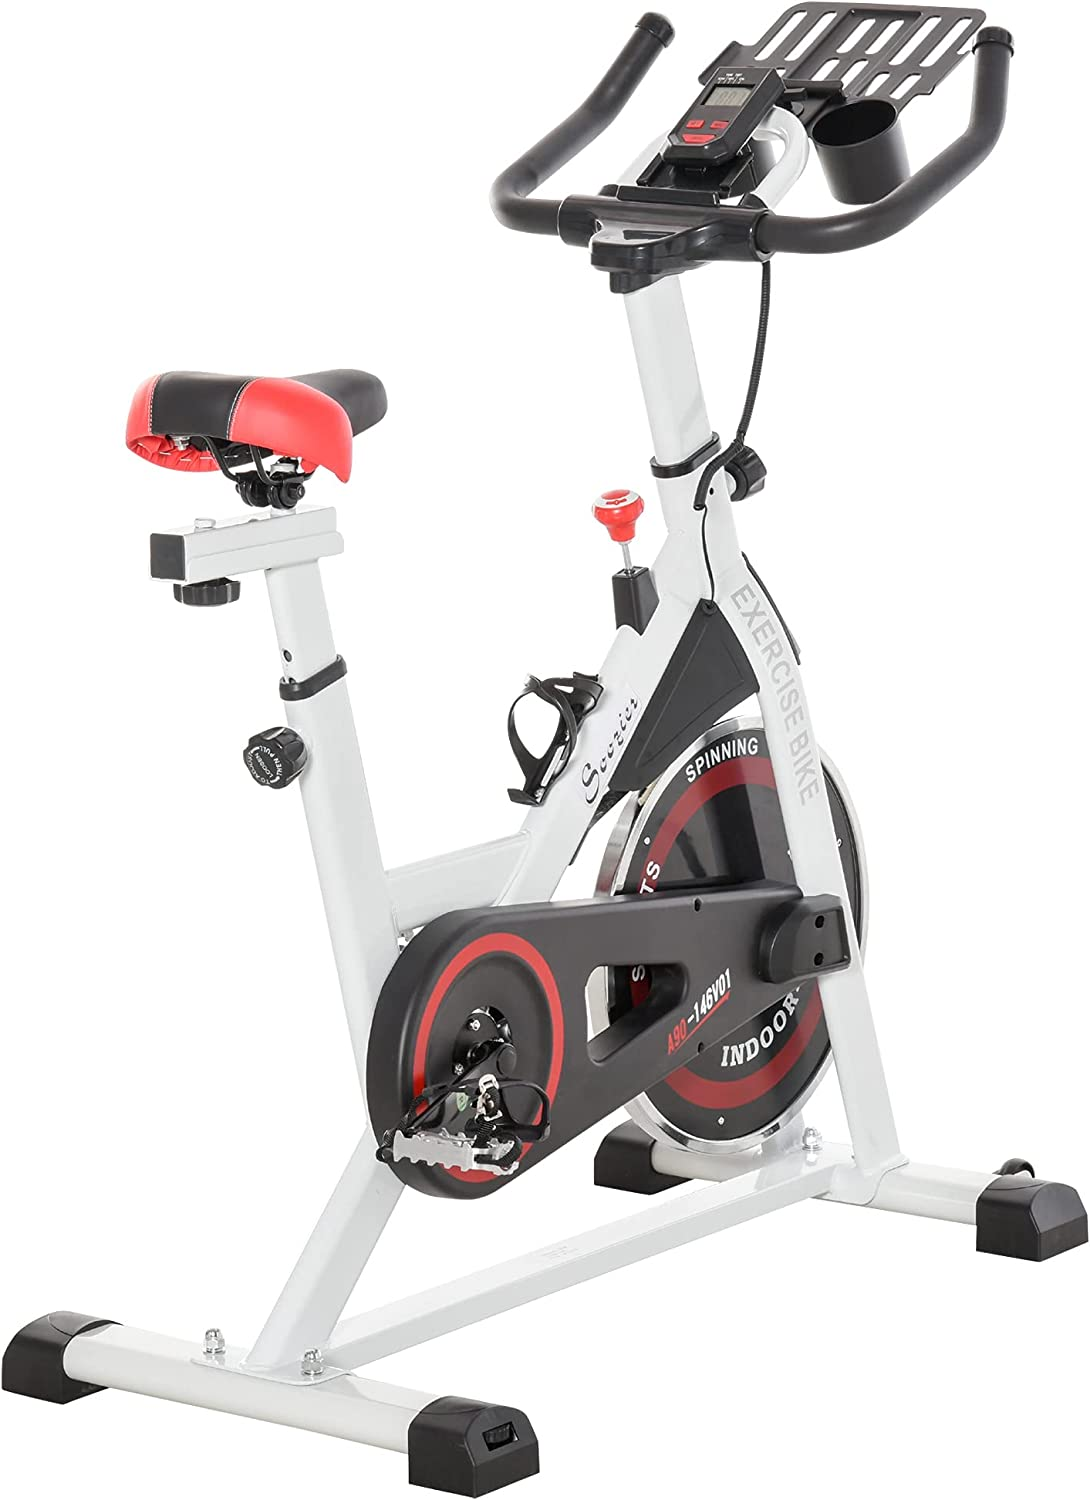 Details about  /Indoor Stationary Exercise Bike Cardio Sport Cycling Shock Absorption System LCD